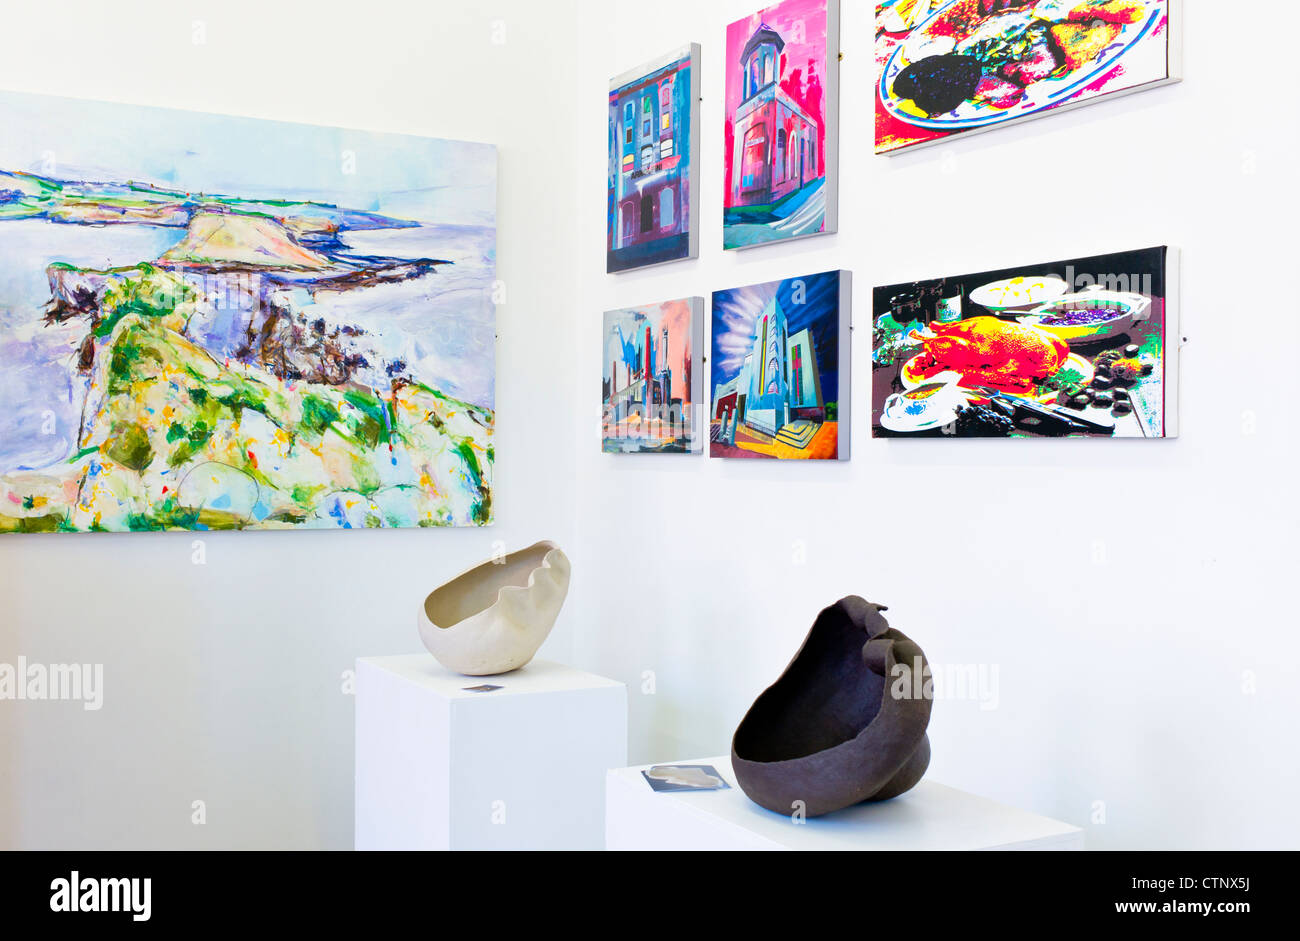 Works of art on display in a gallery - Stock Image